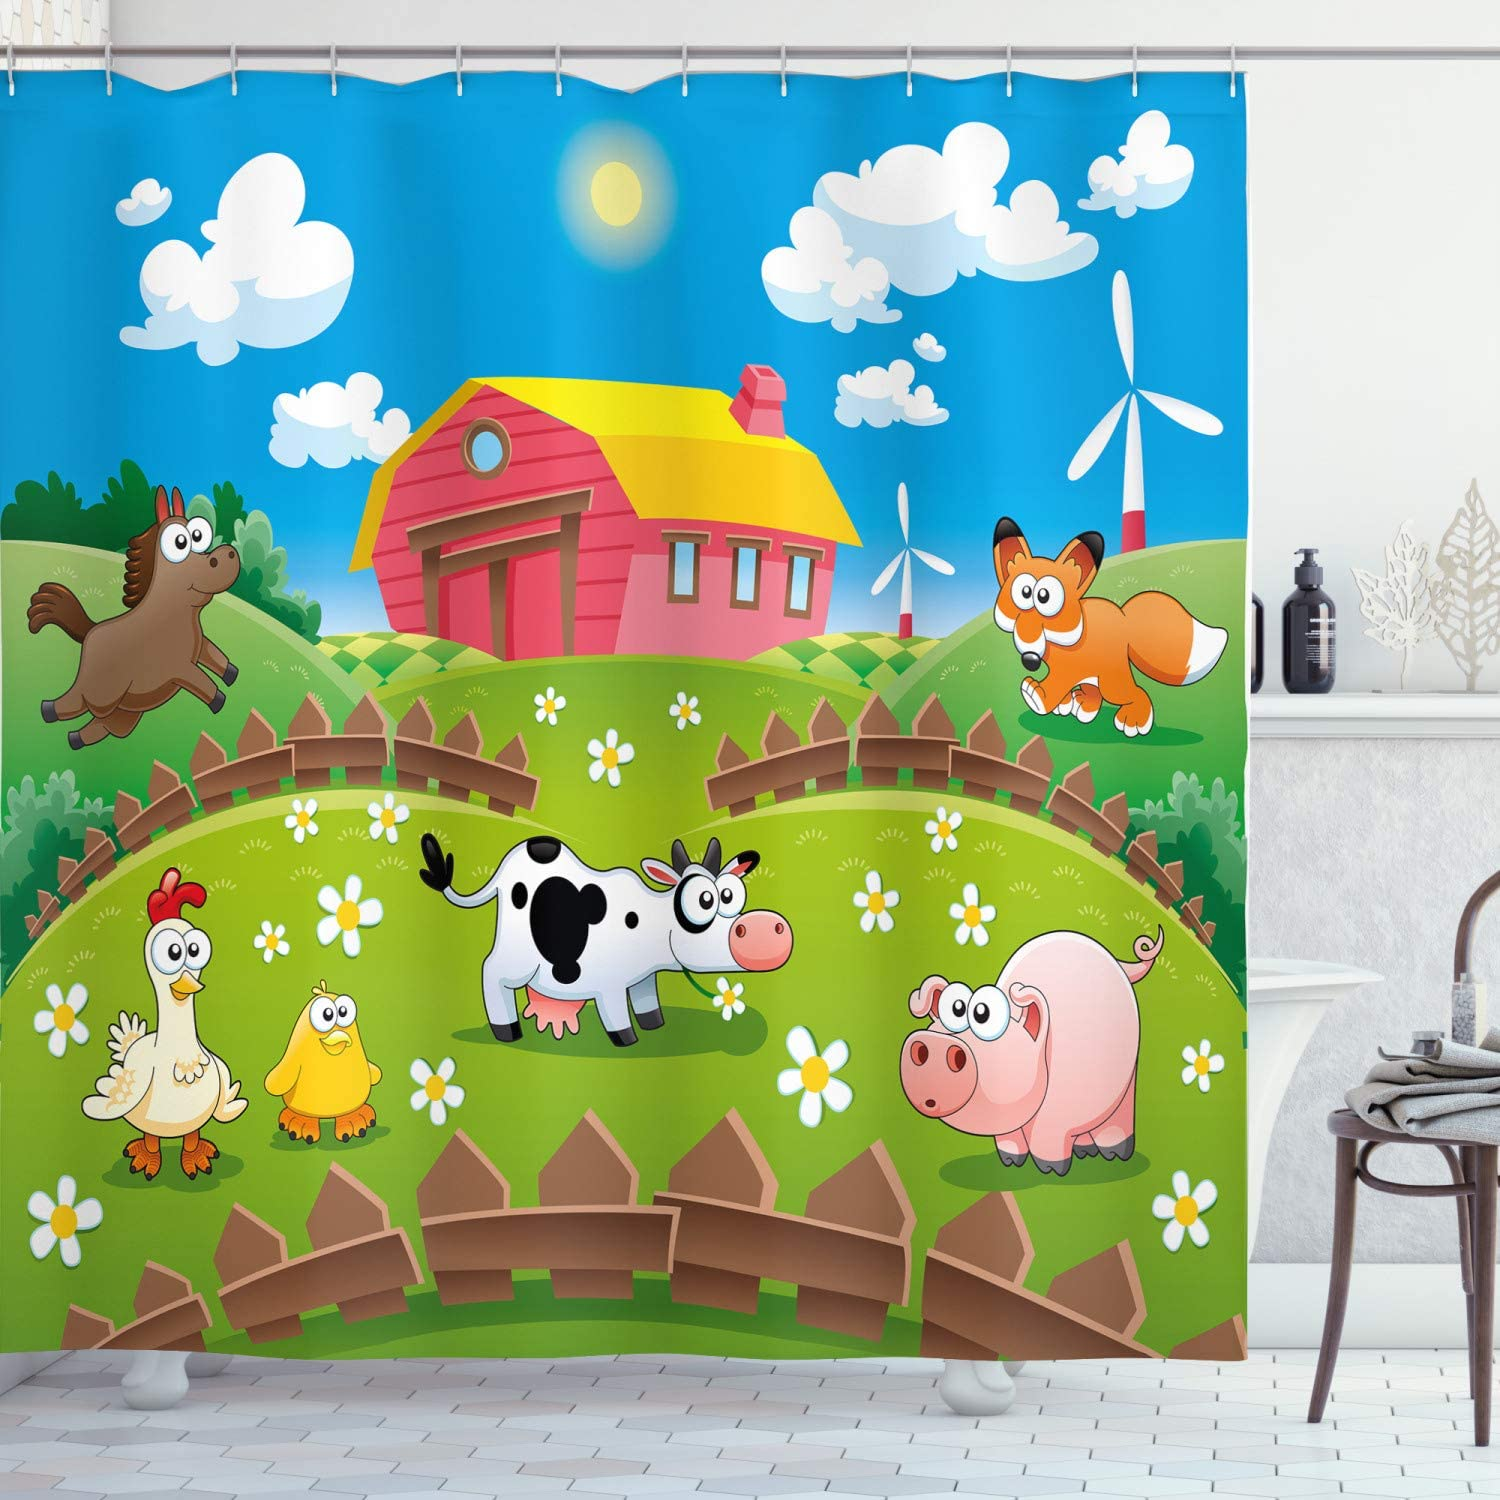 """Ambesonne Cartoon Shower Curtain, Farm with Cow Fox Chicken Pig Horse in The Fences Countryside Rural Children Design, Cloth Fabric Bathroom Decor Set with Hooks, 75"""" Long, Dark Pink"""